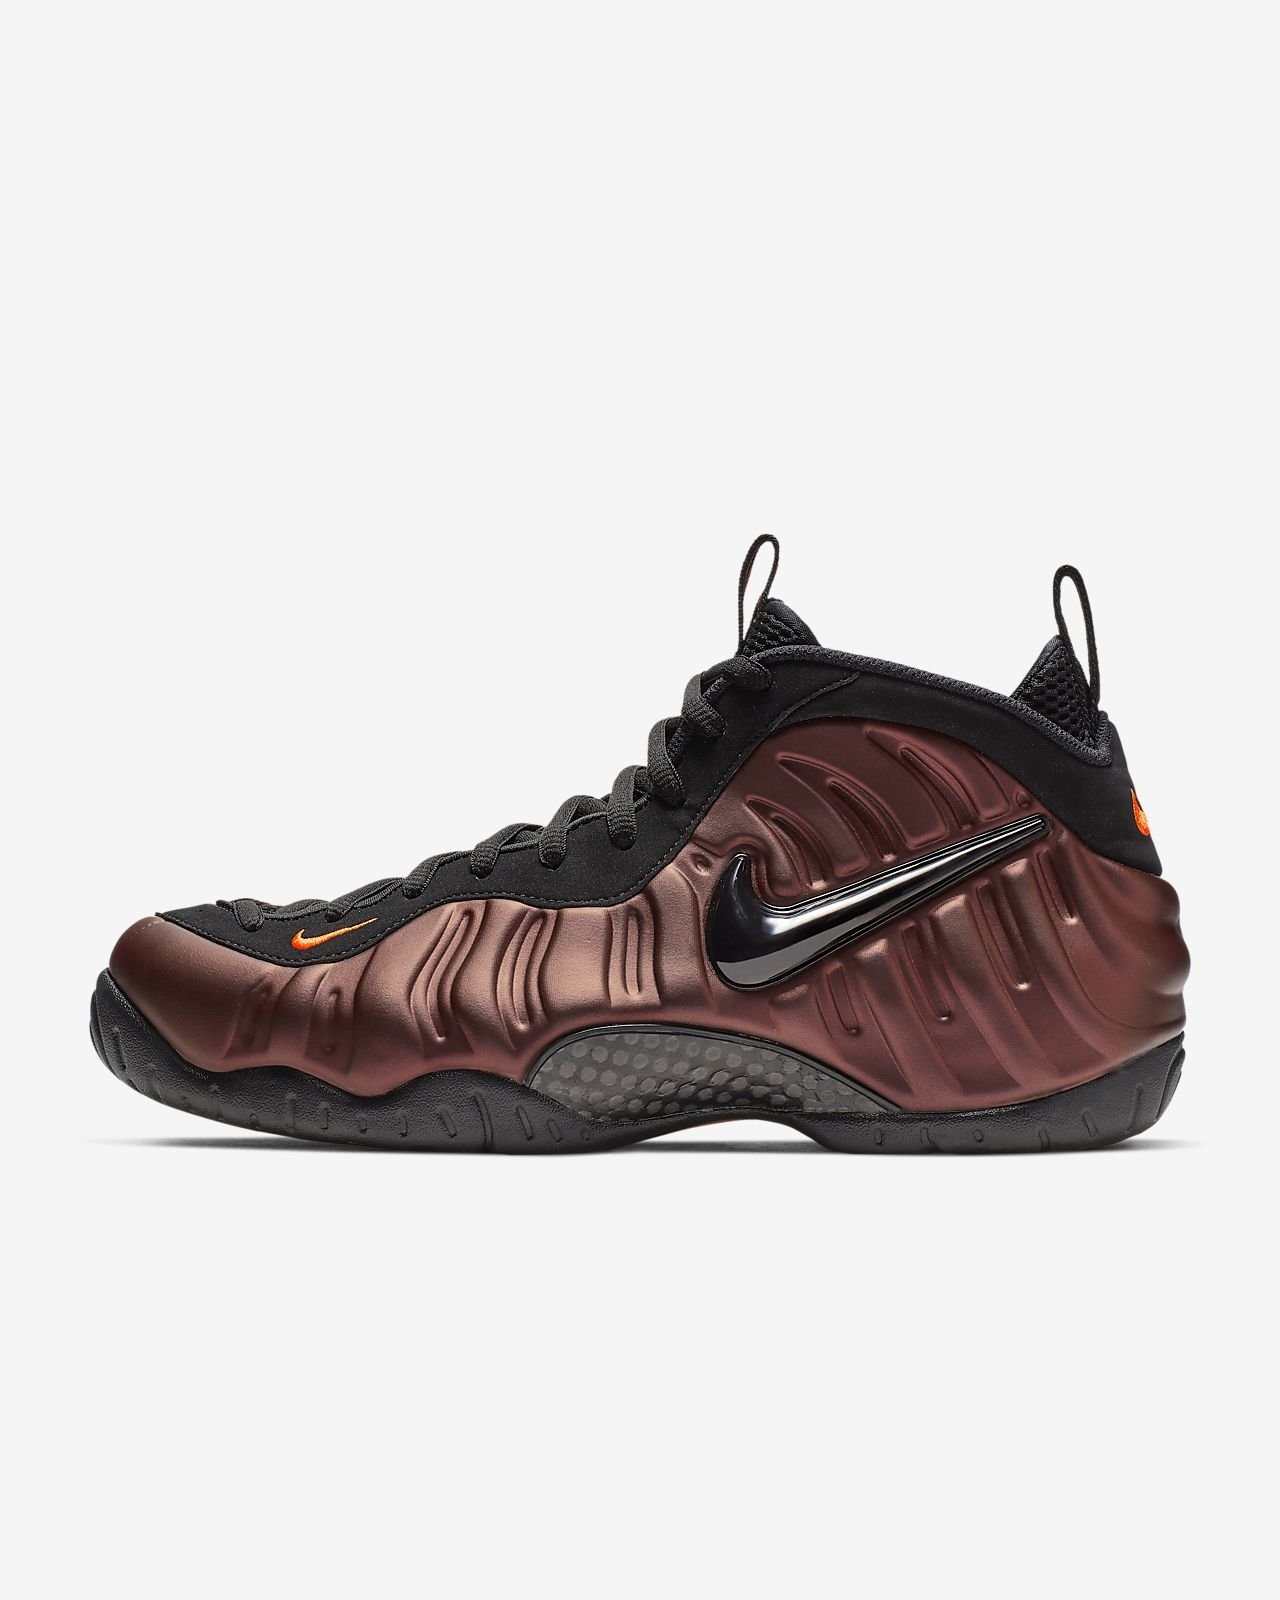 save off 58039 9063c ... Nike Air Foamposite Pro Men s Shoe